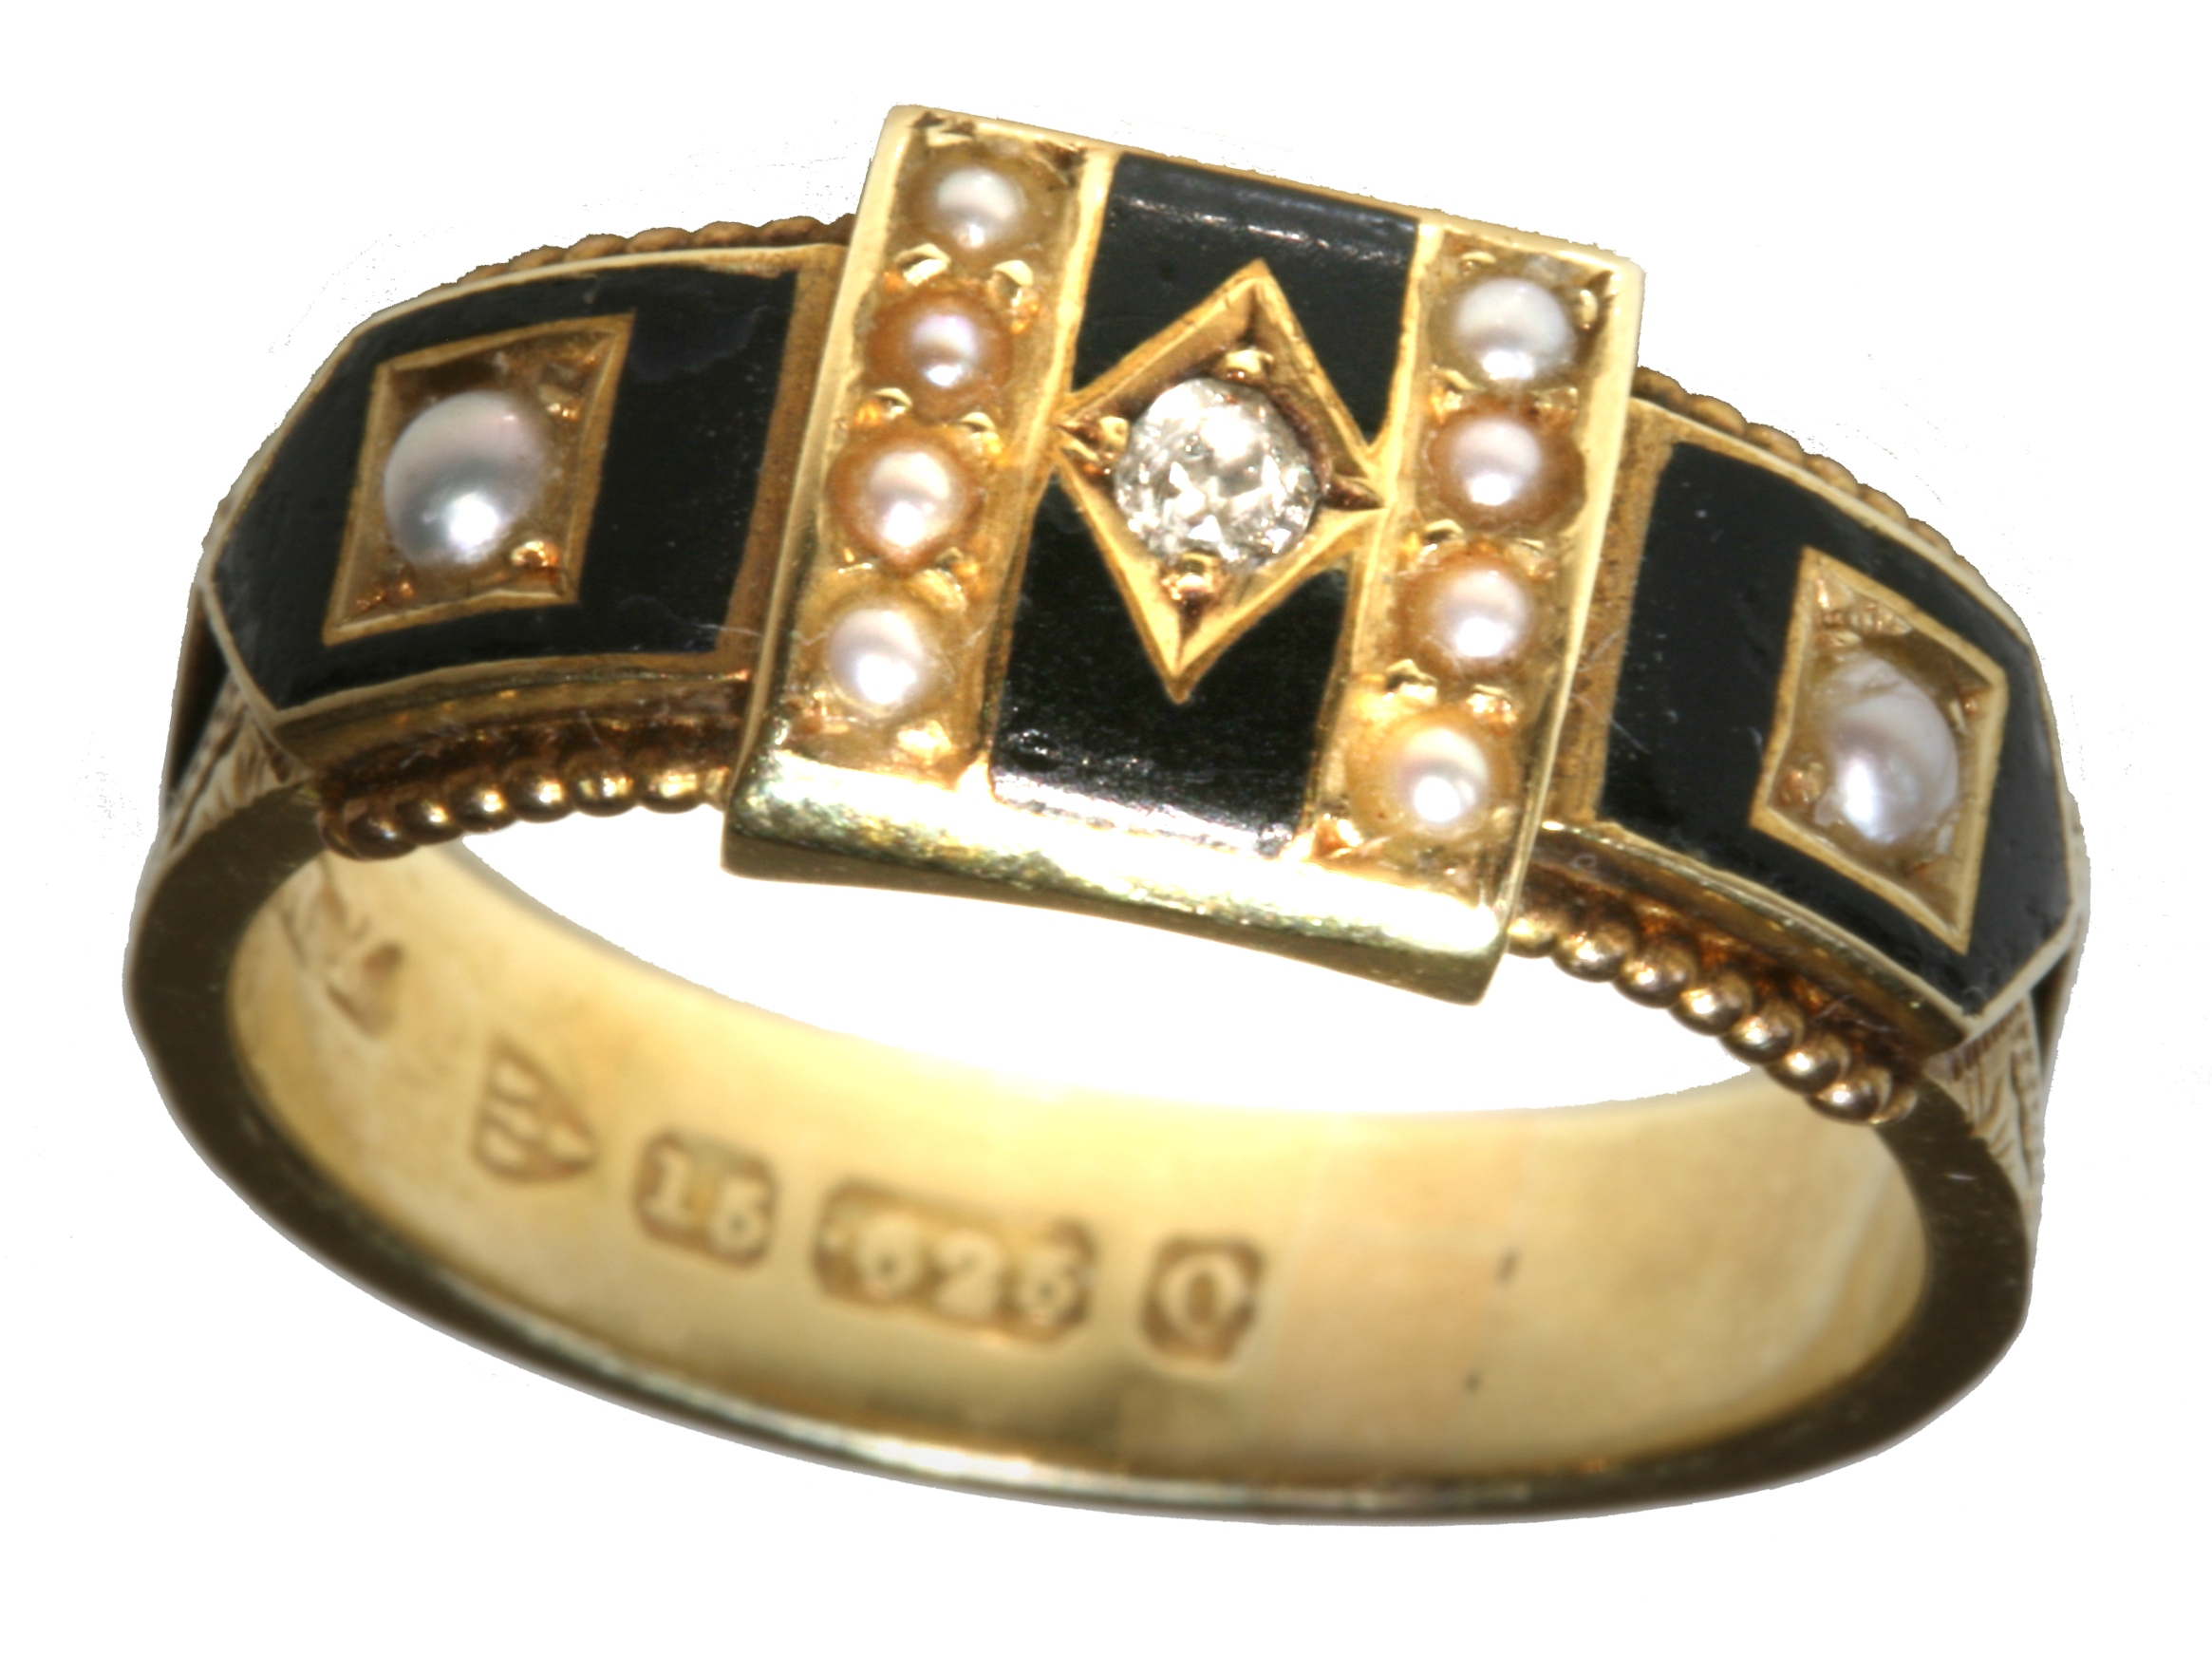 Antique Mourning Ring.jpg